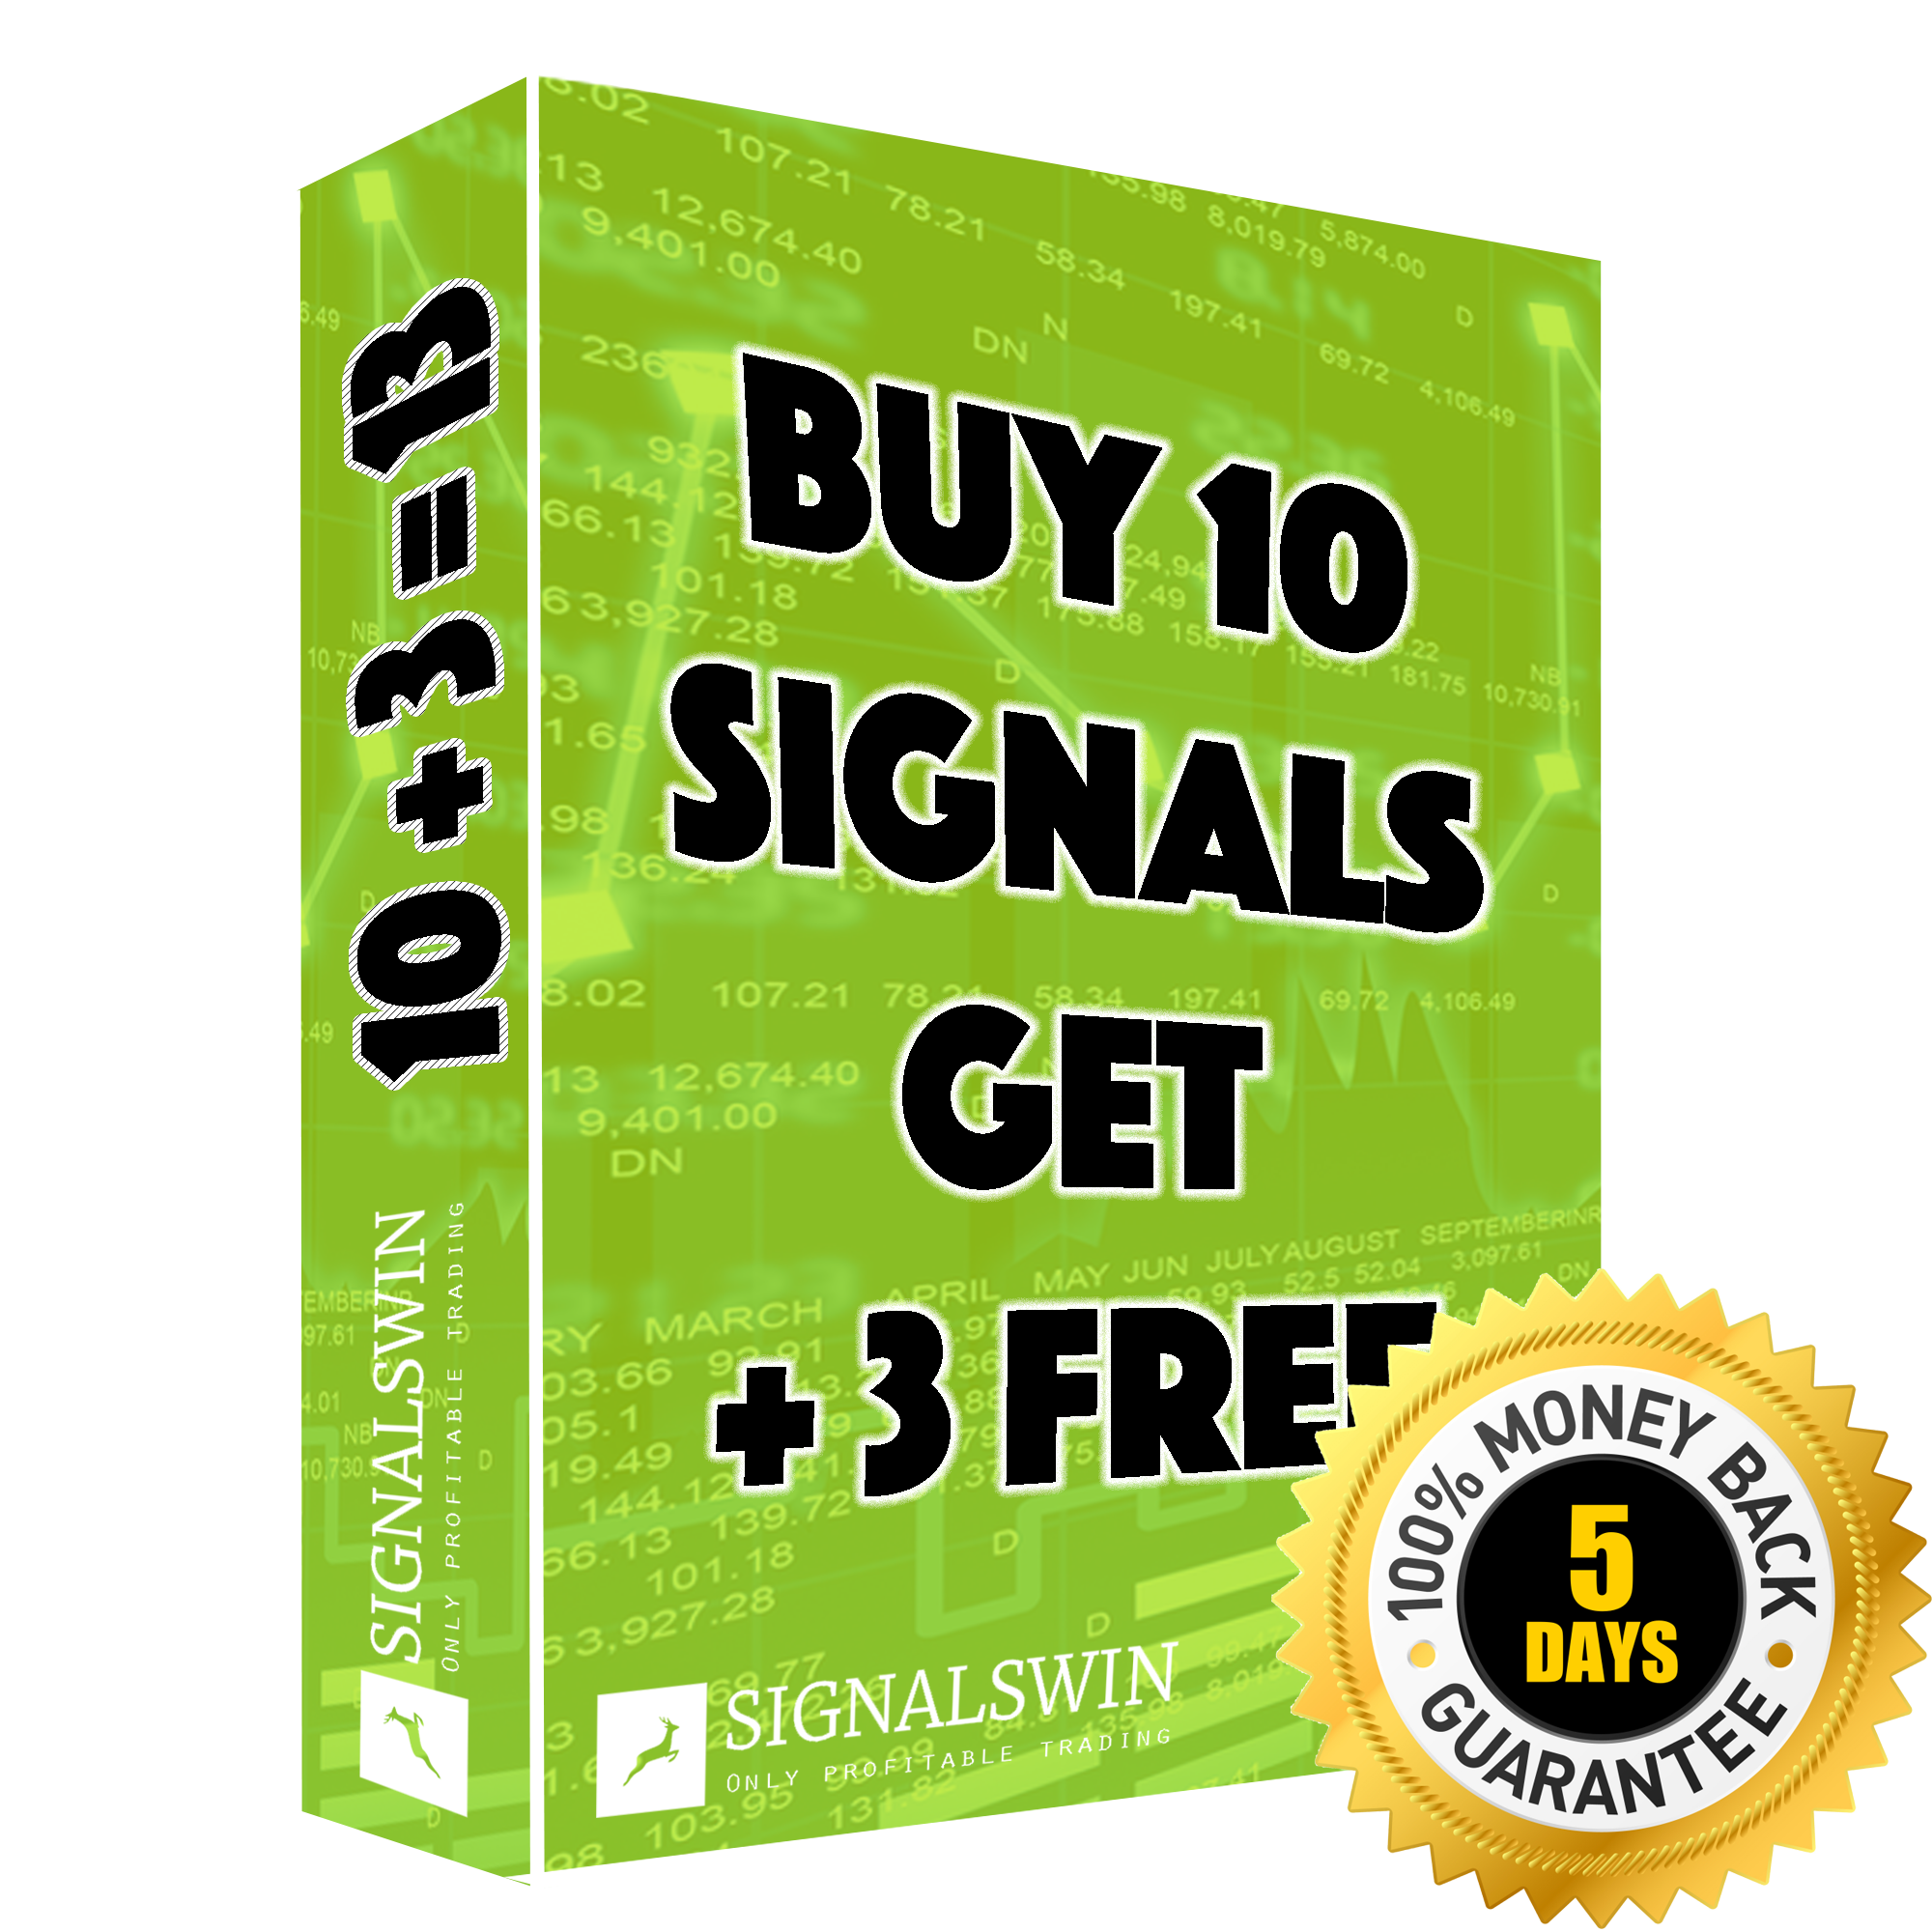 13 signals with money back guaranty